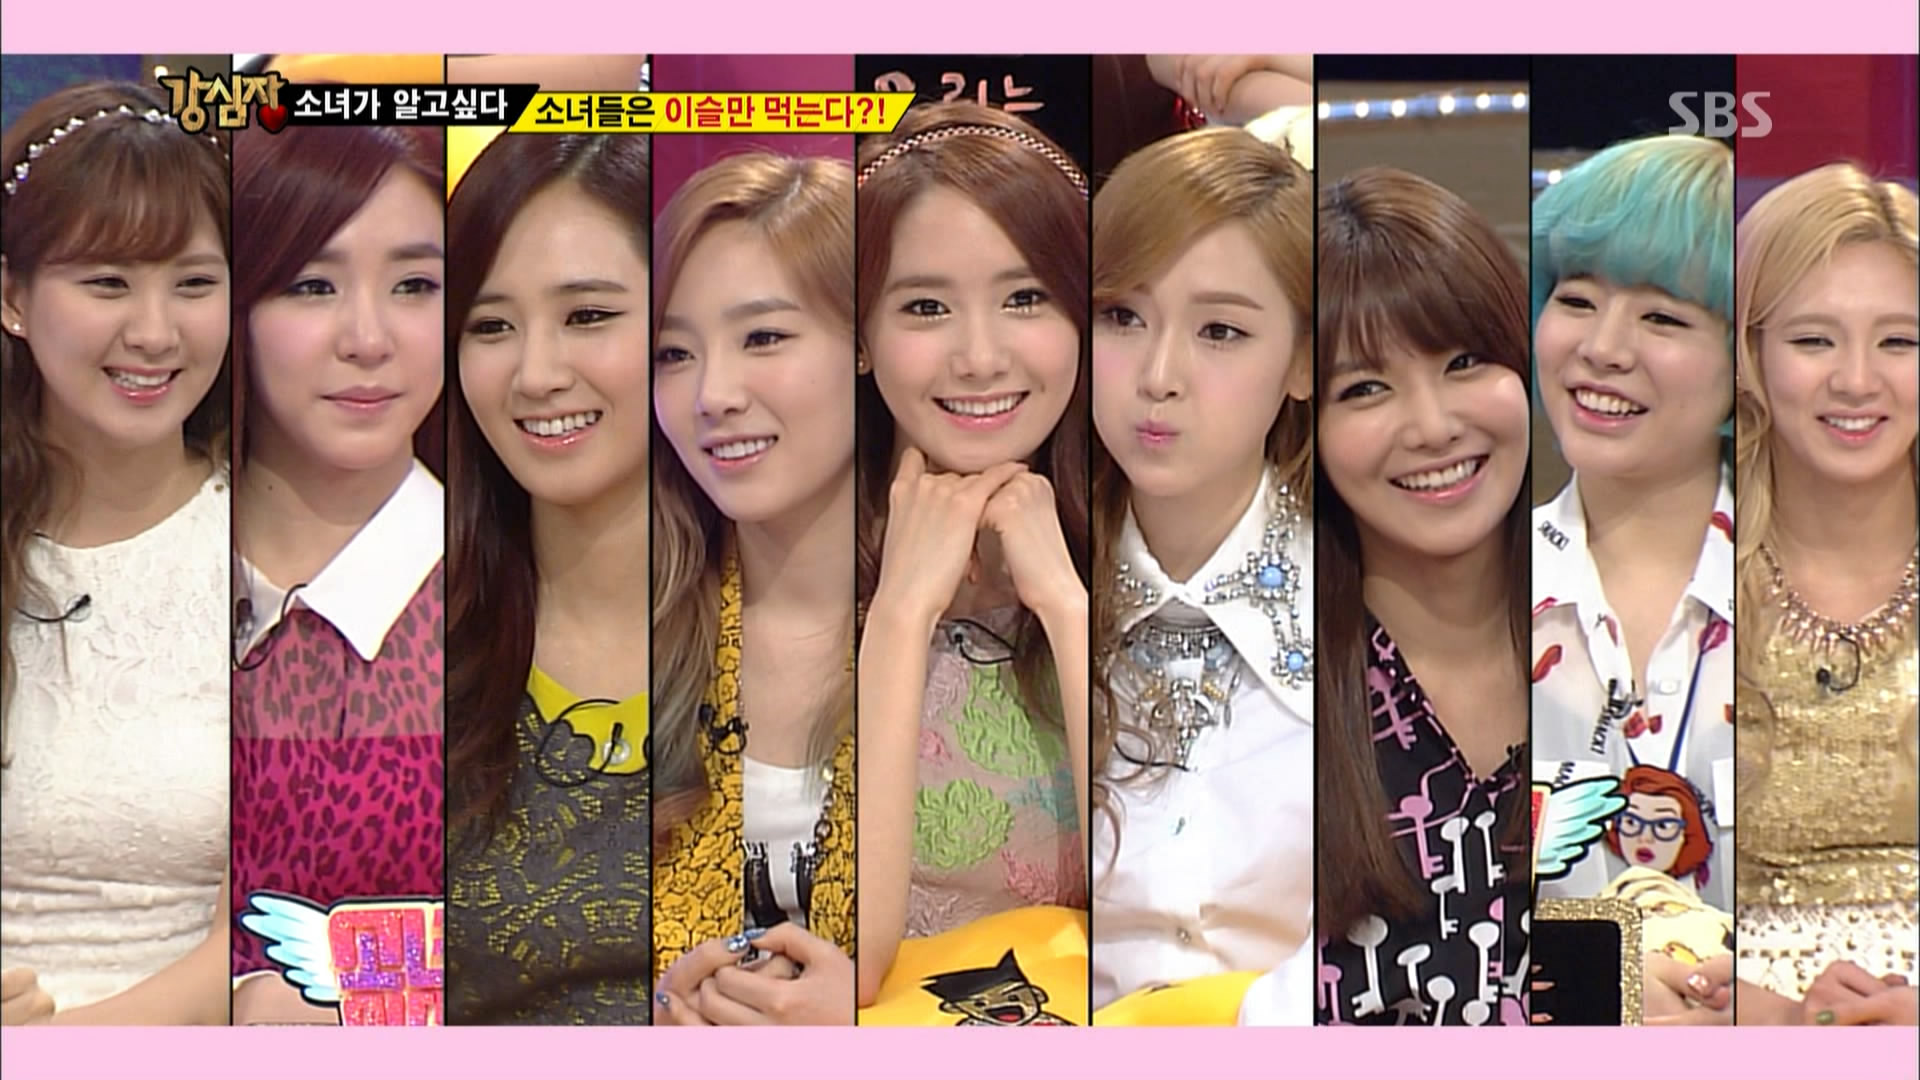 Members Name: 'Strong Heart' Airs First Half Of Girls' Generation Special